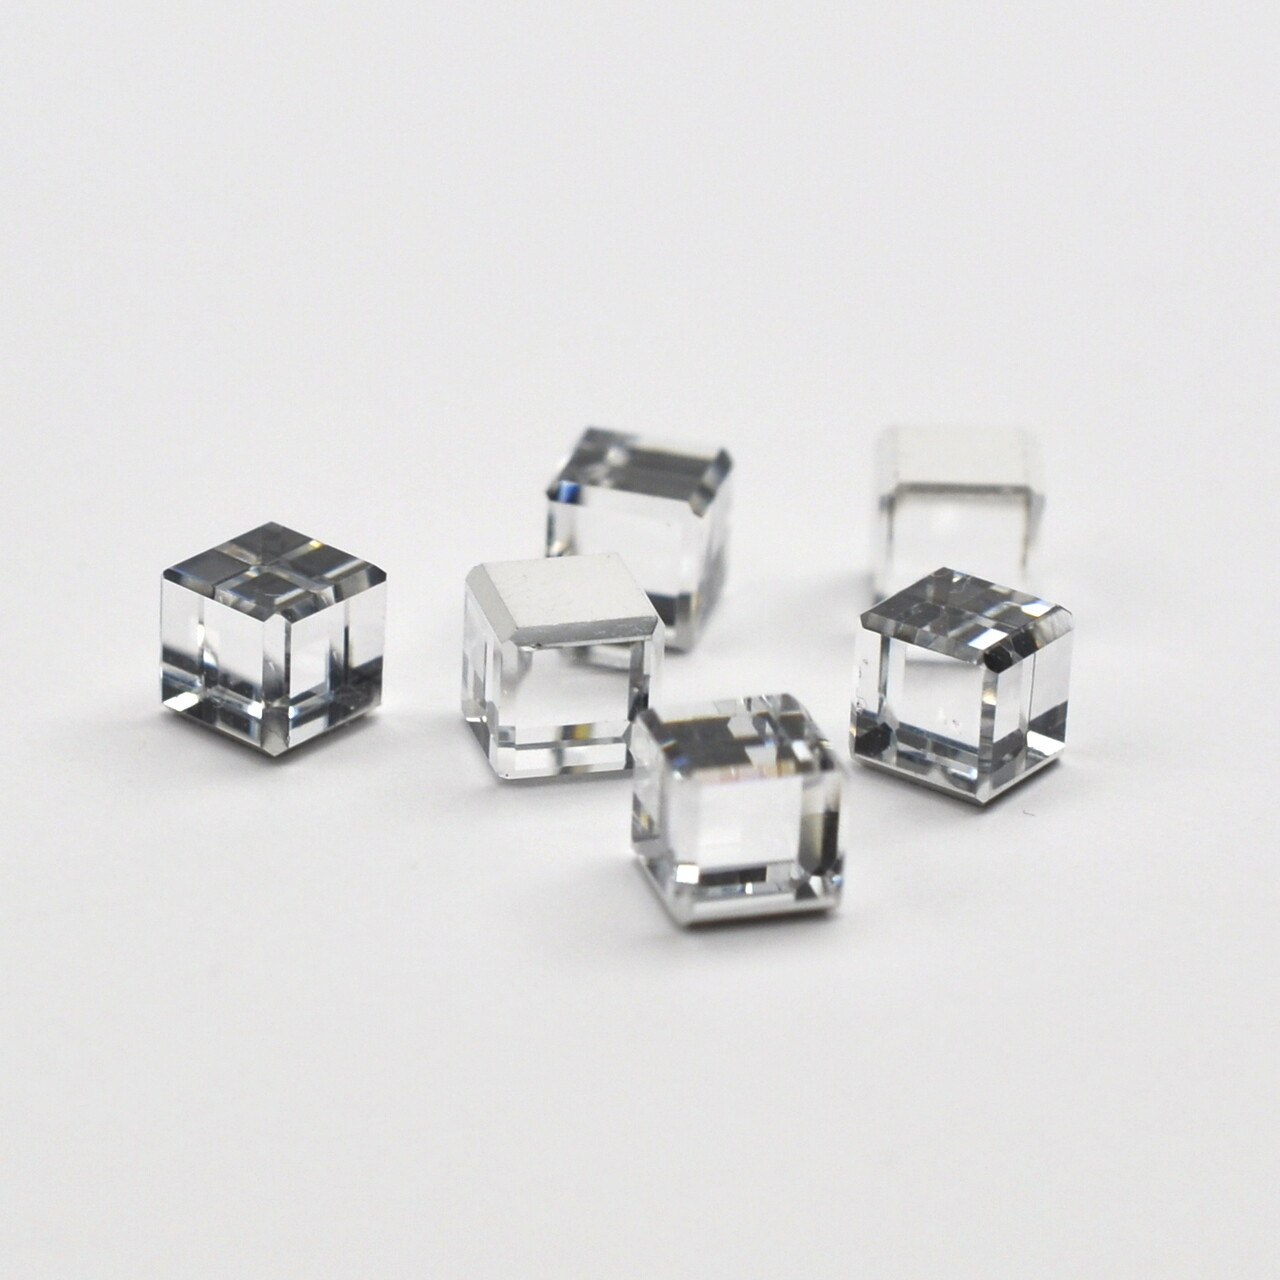 #4840 Comet Argent Light Cube 4 mm (6 pcs)